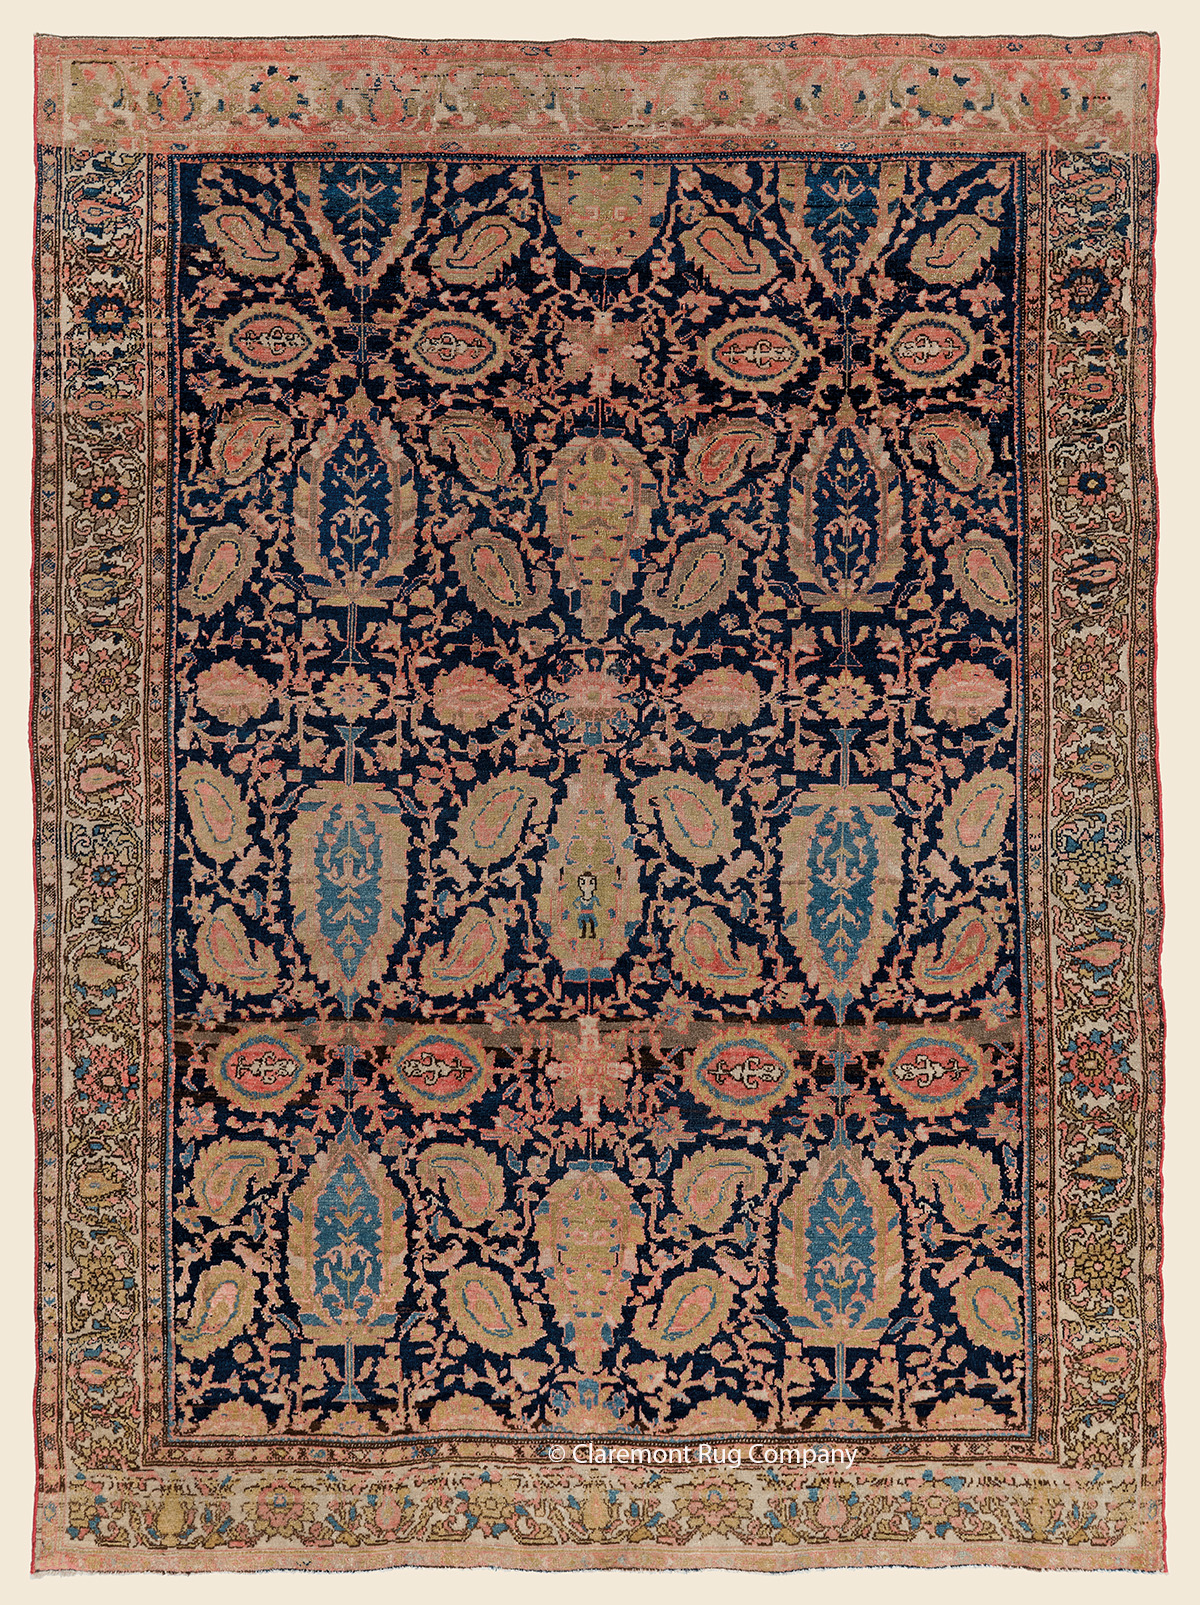 19th century Mishin Malayer Antique Persian Rug 4ft x 6ft with floral design of Boteh and orchids